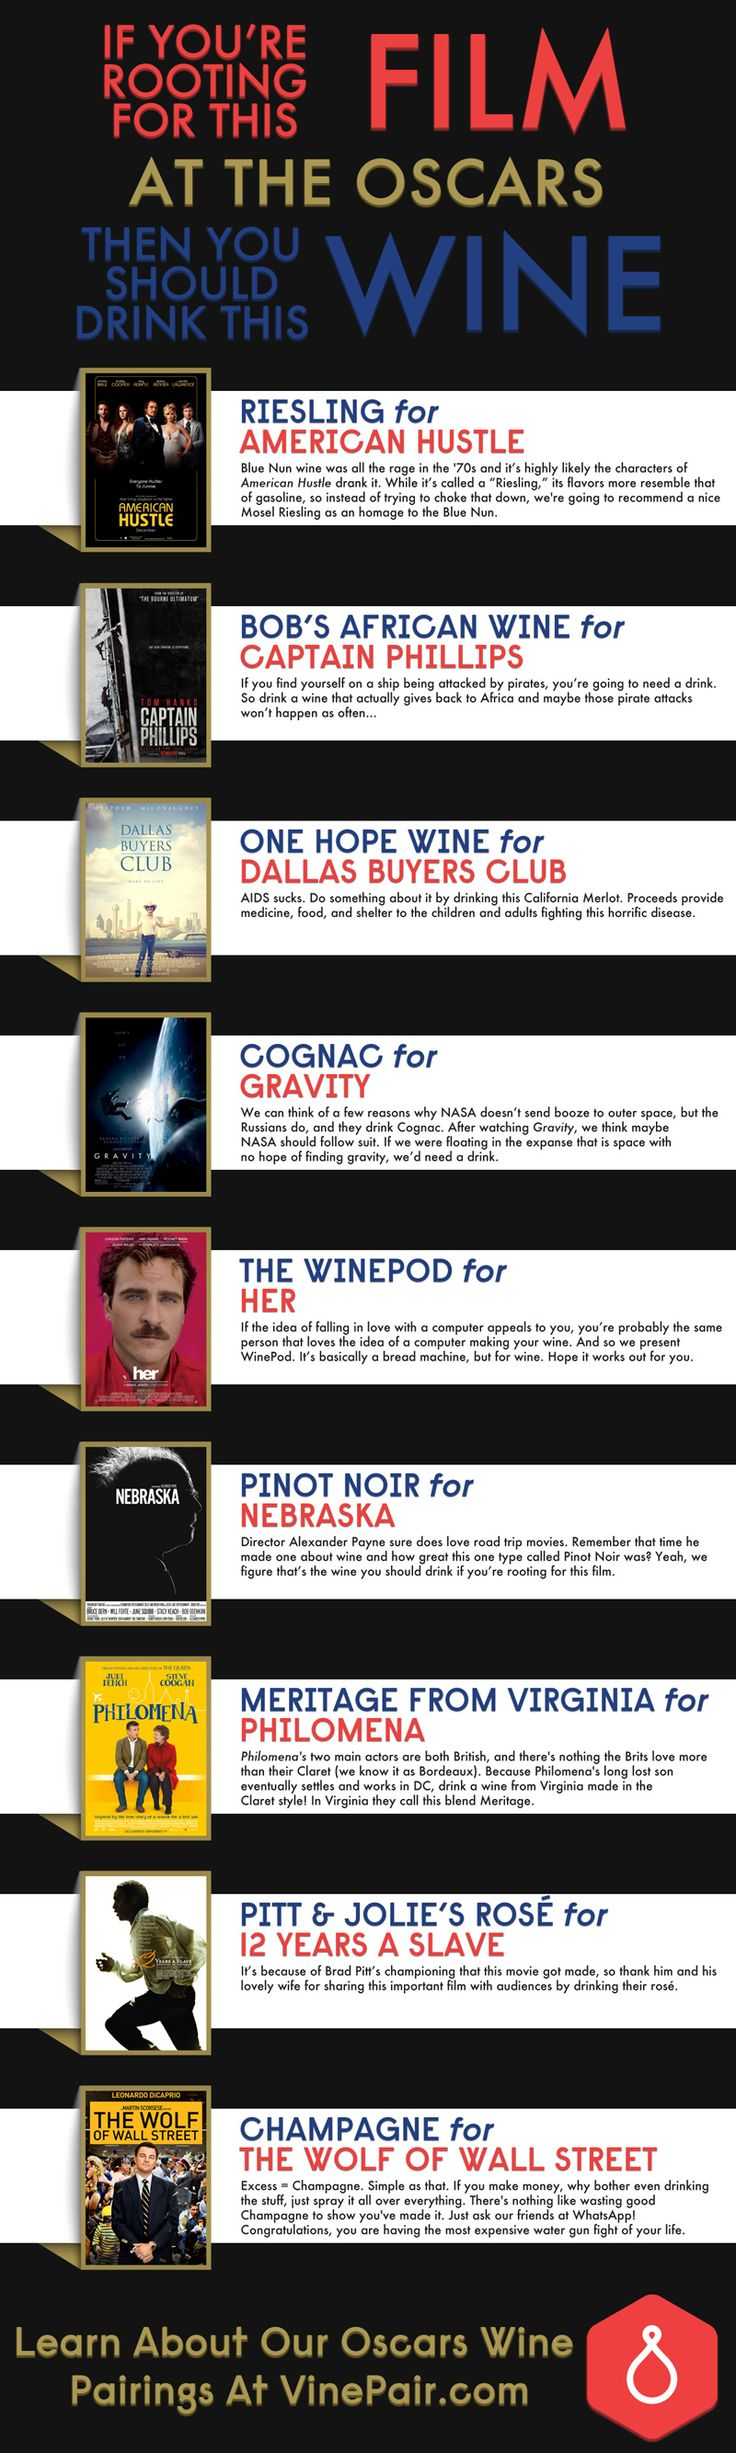 Pairing the Best Picture nominees from the 2014 Oscars with wines